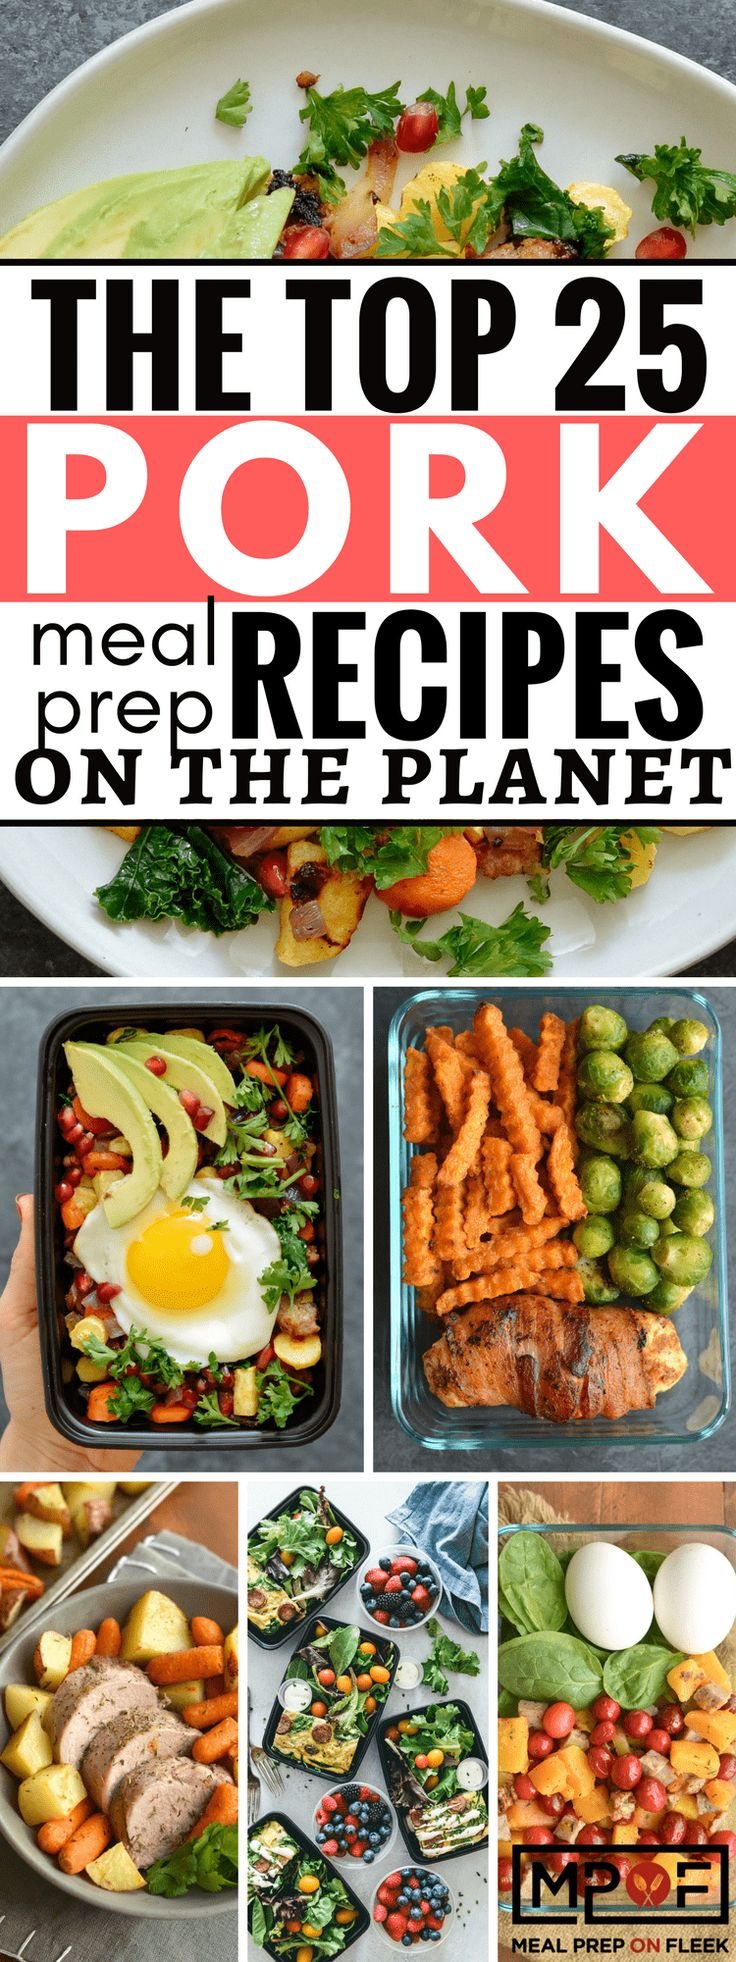 Top 25 Pork Meal Prep Recipes On The Planet